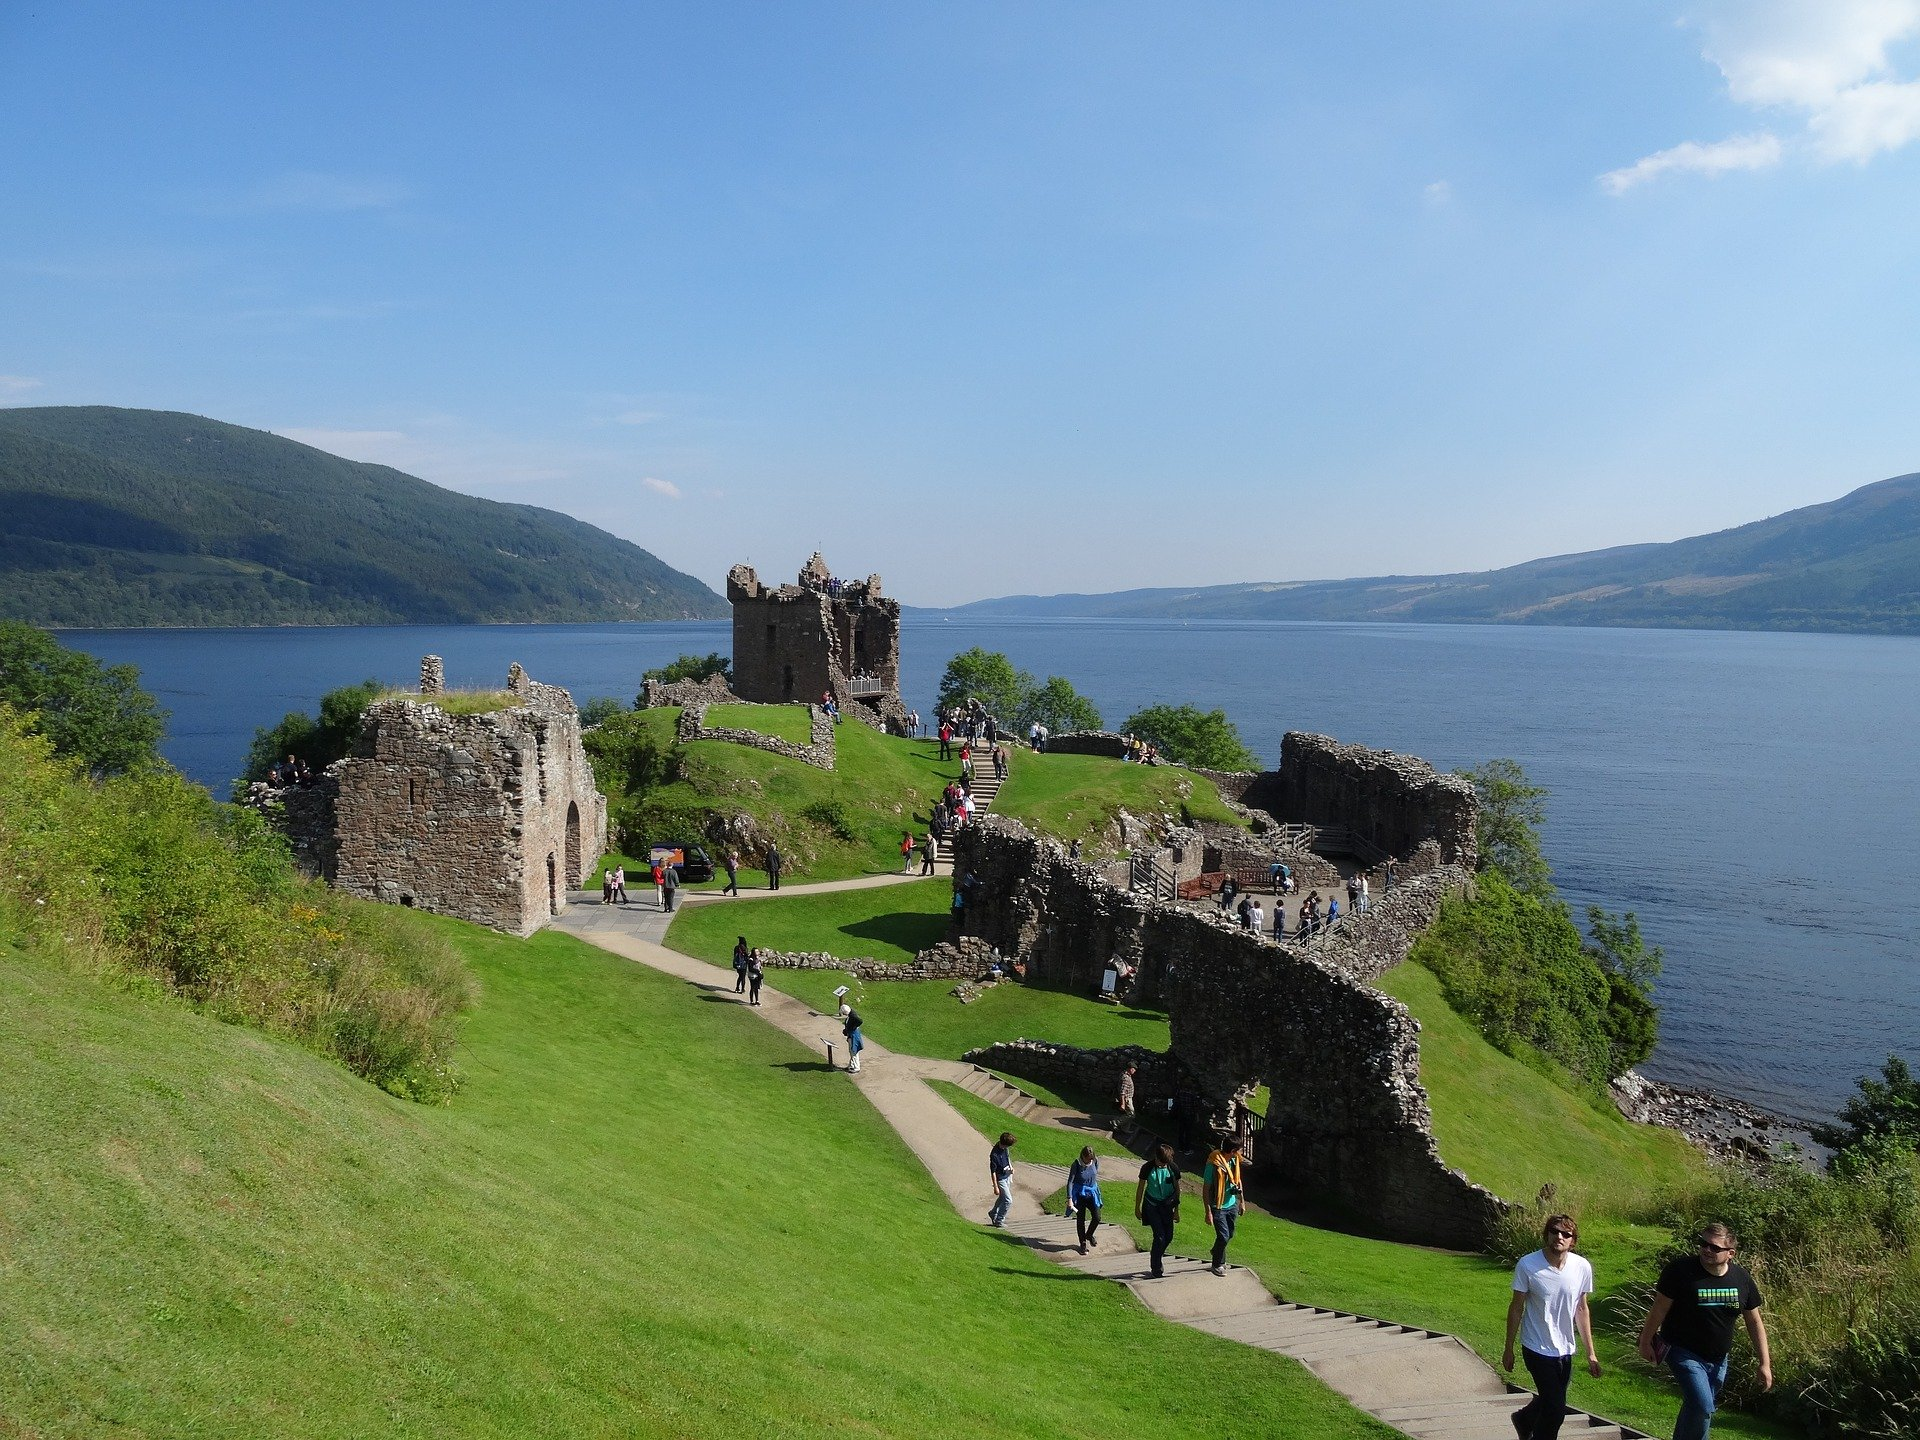 View over Urquhart Castle to Loch Ness